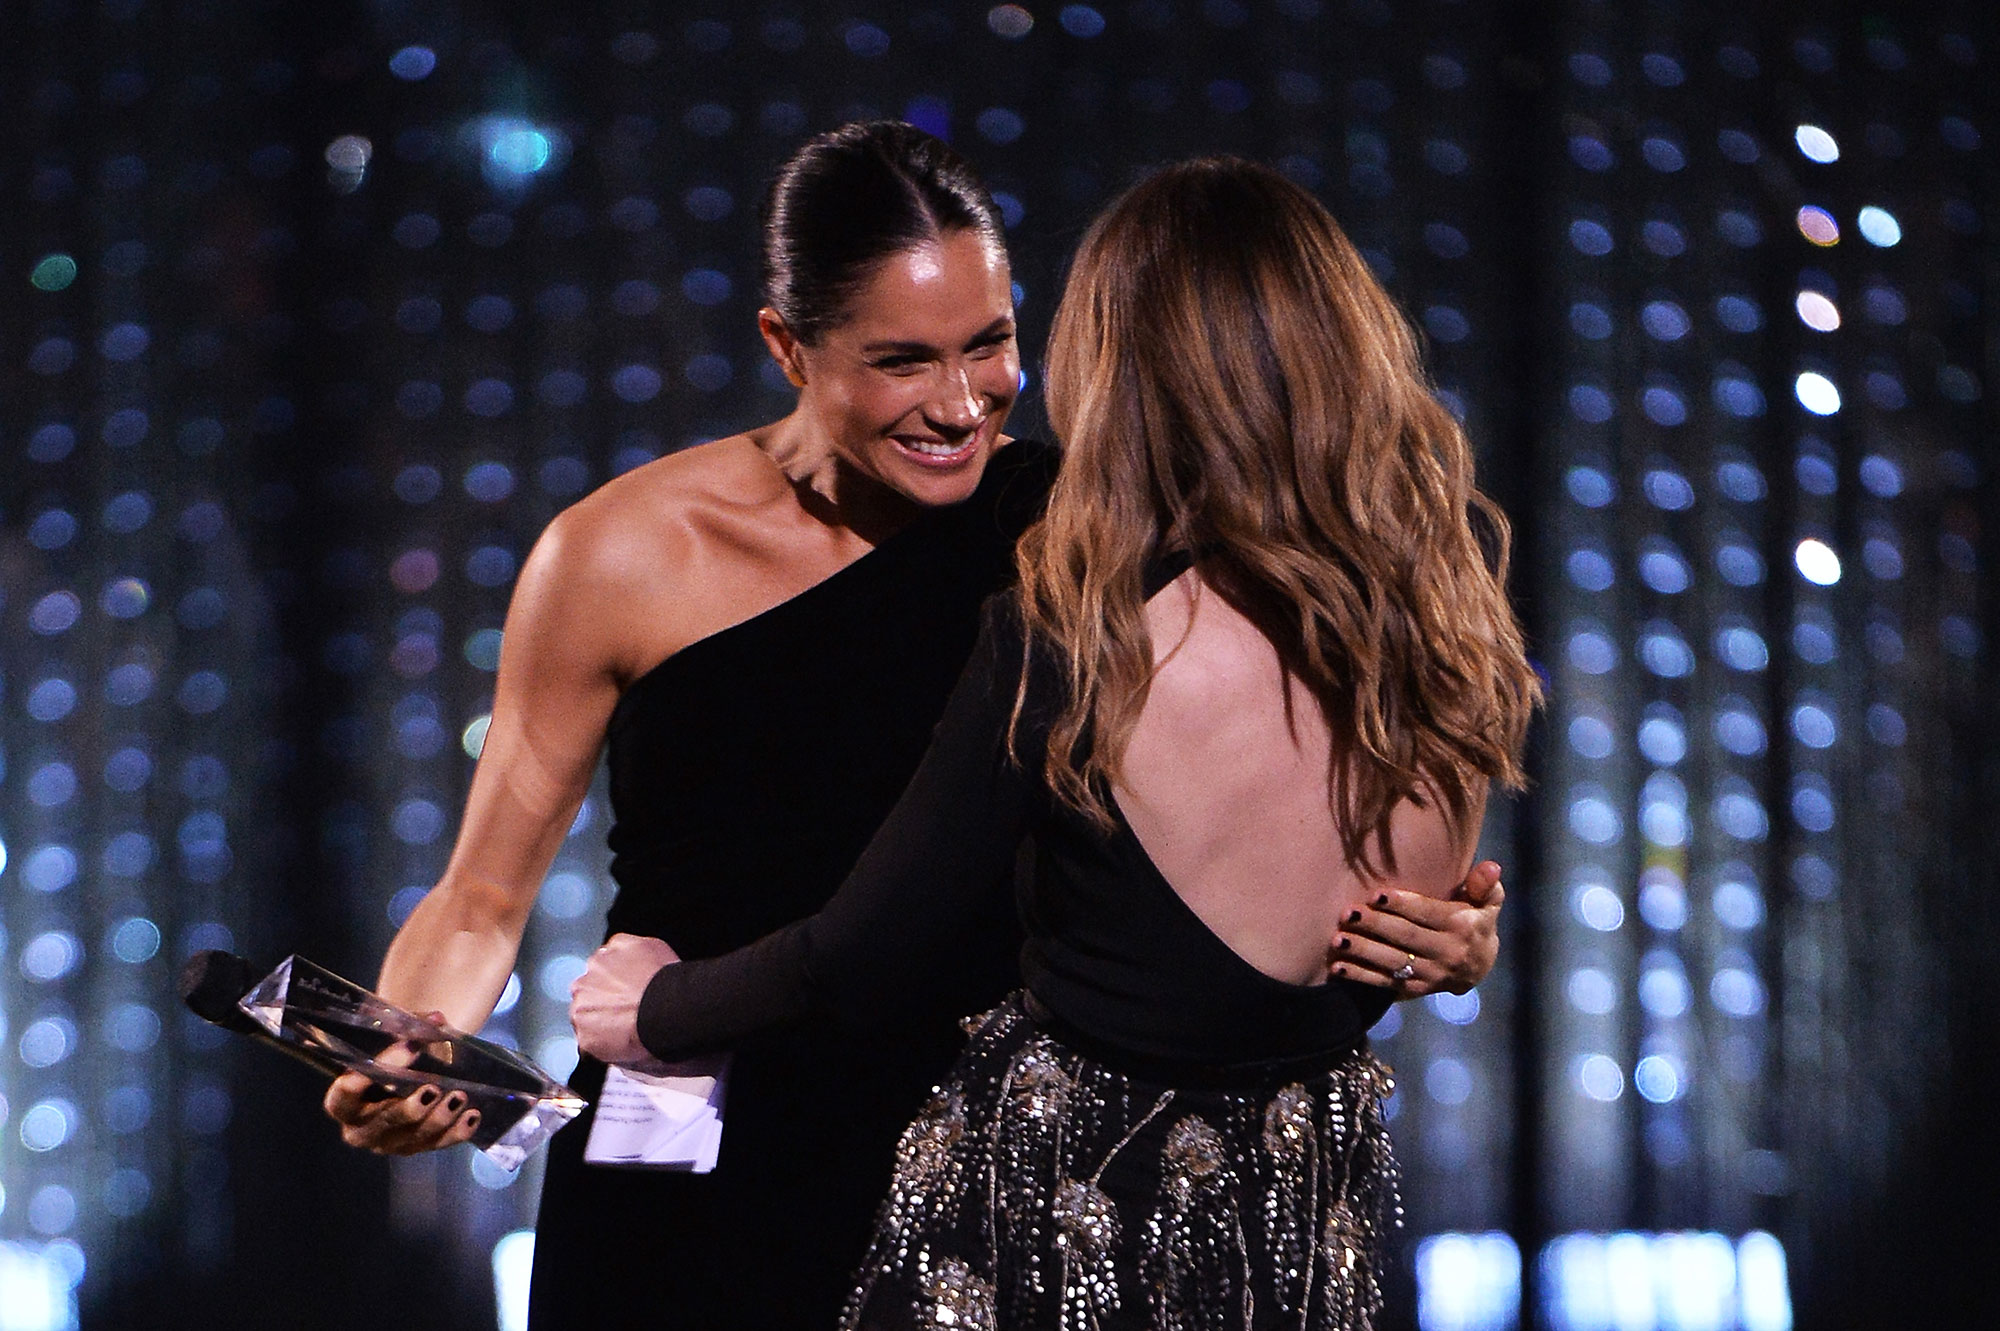 <div class='meta'><div class='origin-logo' data-origin='none'></div><span class='caption-text' data-credit='Jeff Spicer/BFC/Getty Images'>Meghan, Duchess of Sussex presents the award for British Designer of the Year Womenswear Award to Clare Waight Keller for Givenchy during The Fashion Awards 2018.</span></div>